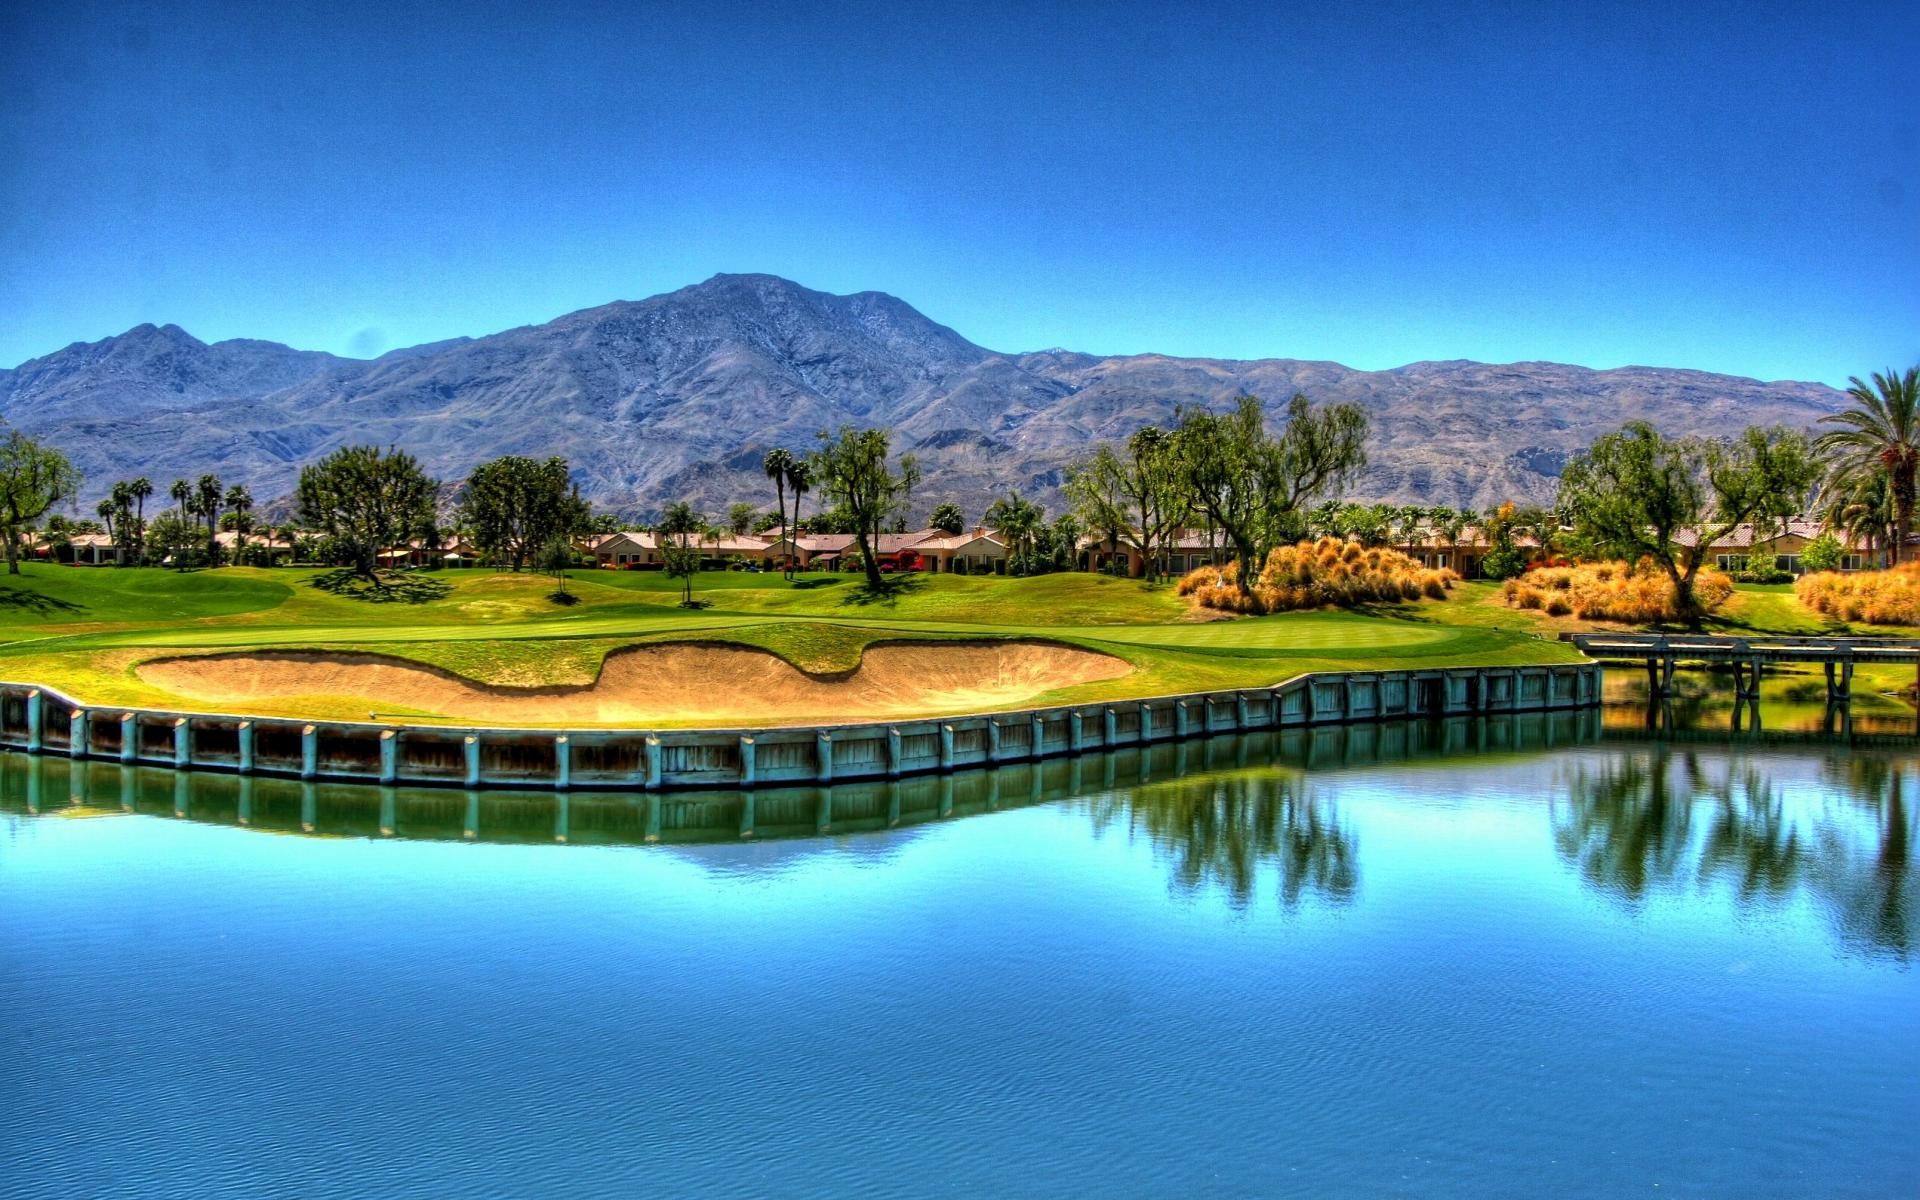 colorful golf course